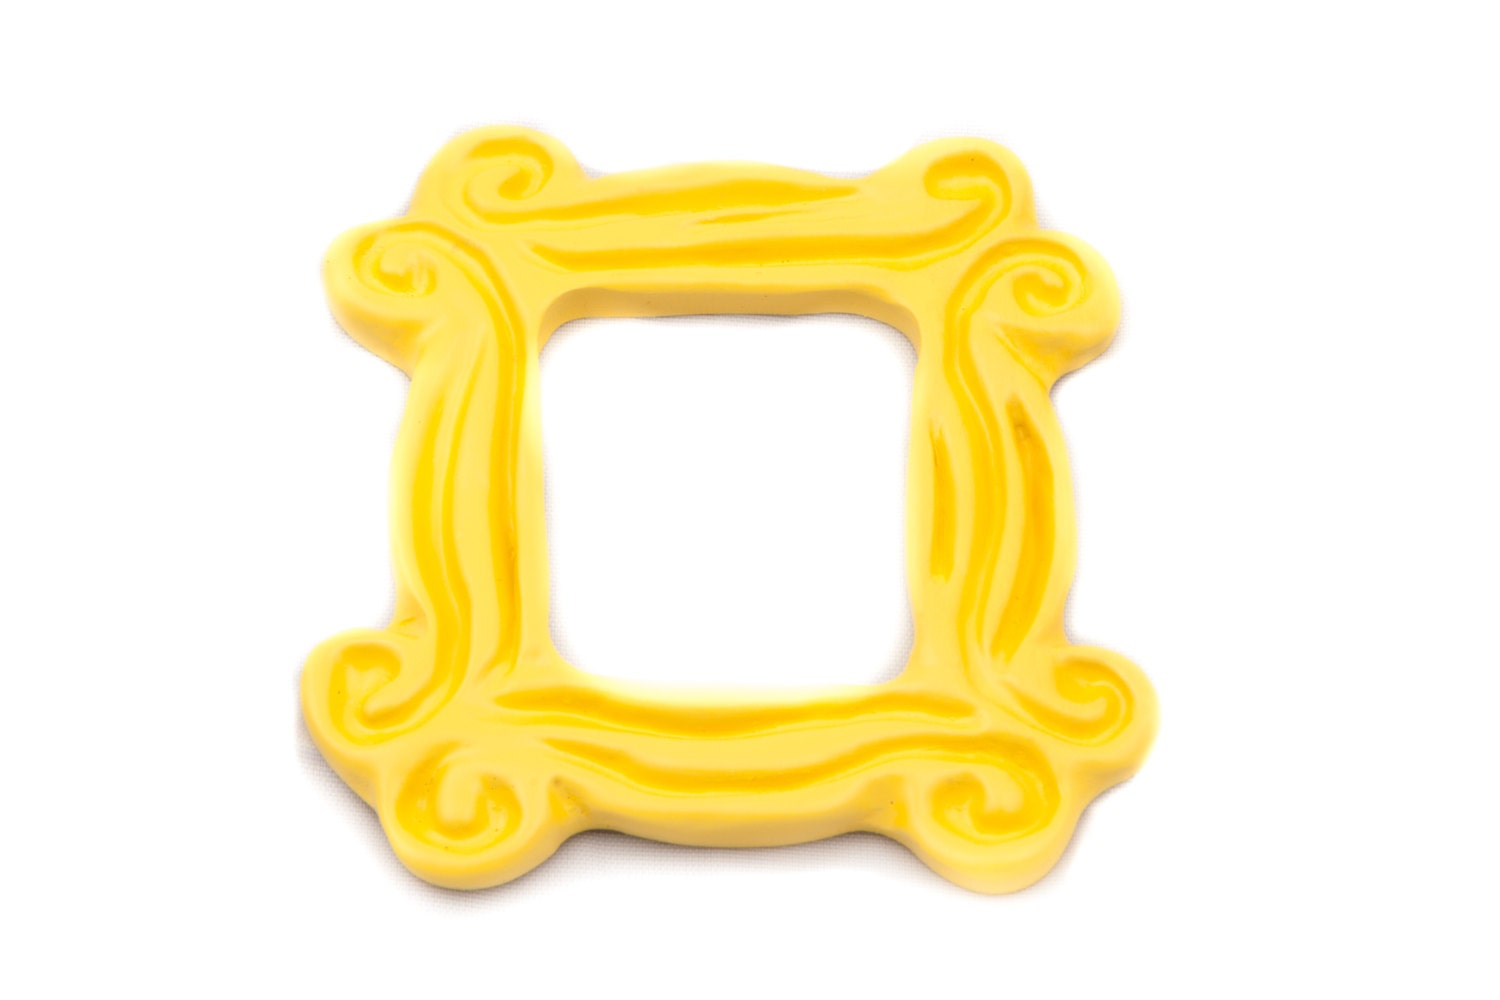 Yellow Peephole Frame Magnet 3 x 3 inspired by the one on